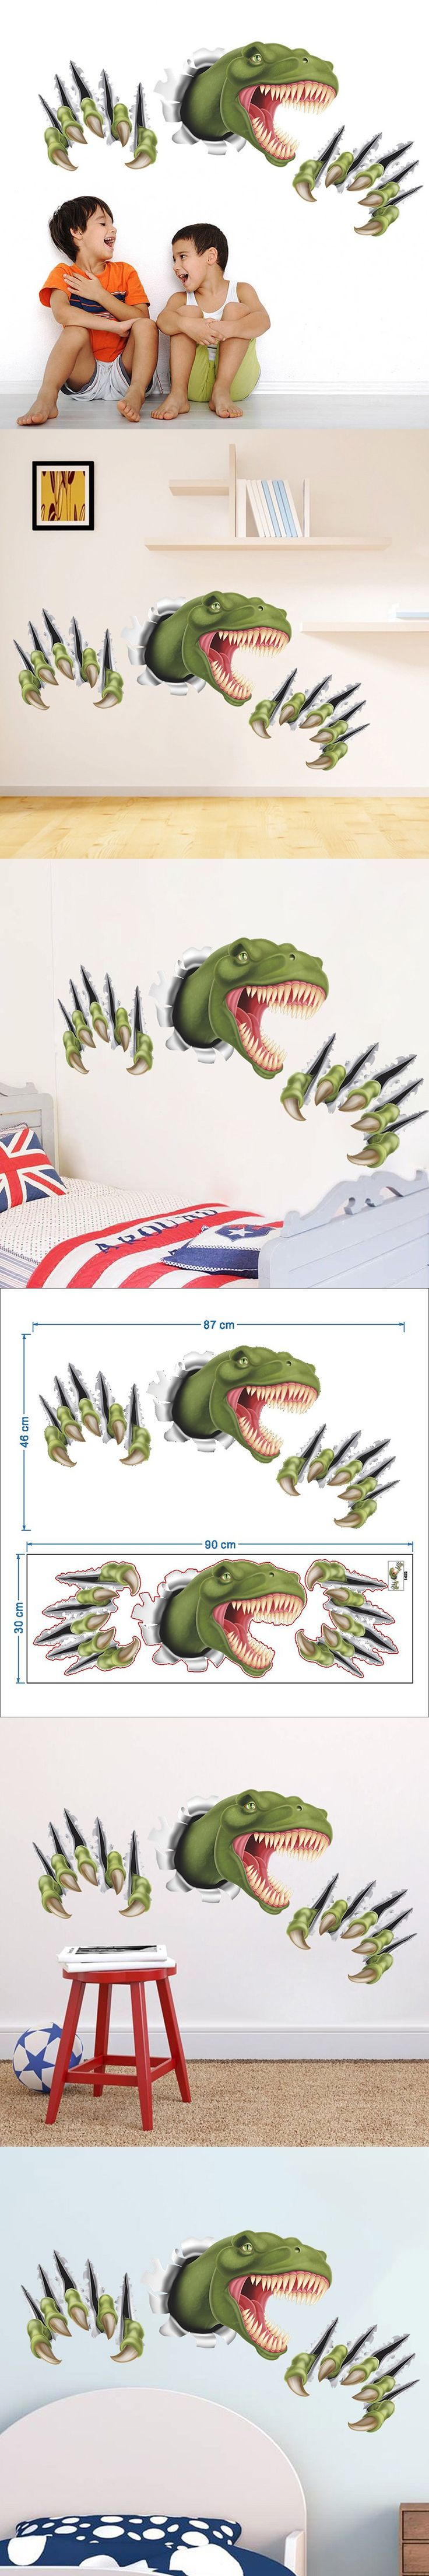 1pcs 3D Side Dinosaur Claw DIY Removable Wall Stickers Kids Bedroom Home  Decor House Decoration Wall